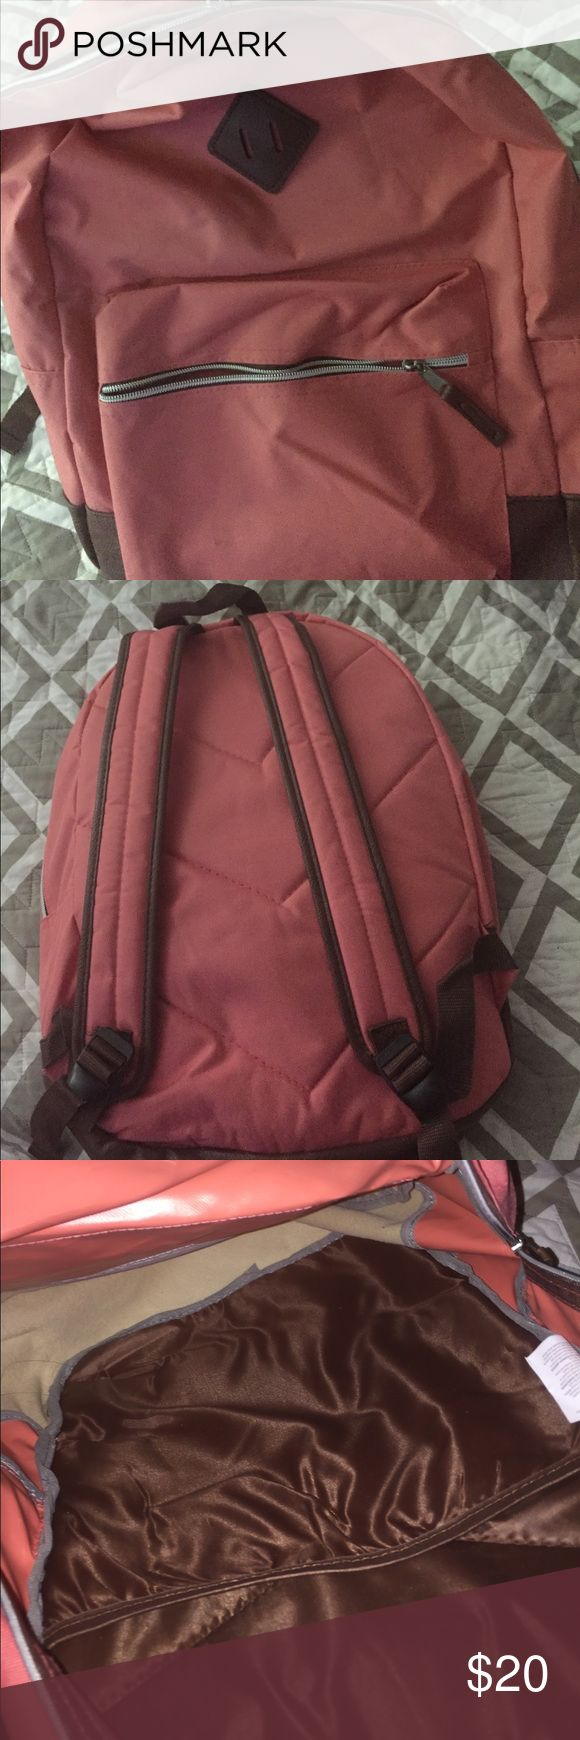 Pink bookbag Light pink bookbag. Lots of space to put your school things in. Amazing quality, only used twice!! Bags Backpacks